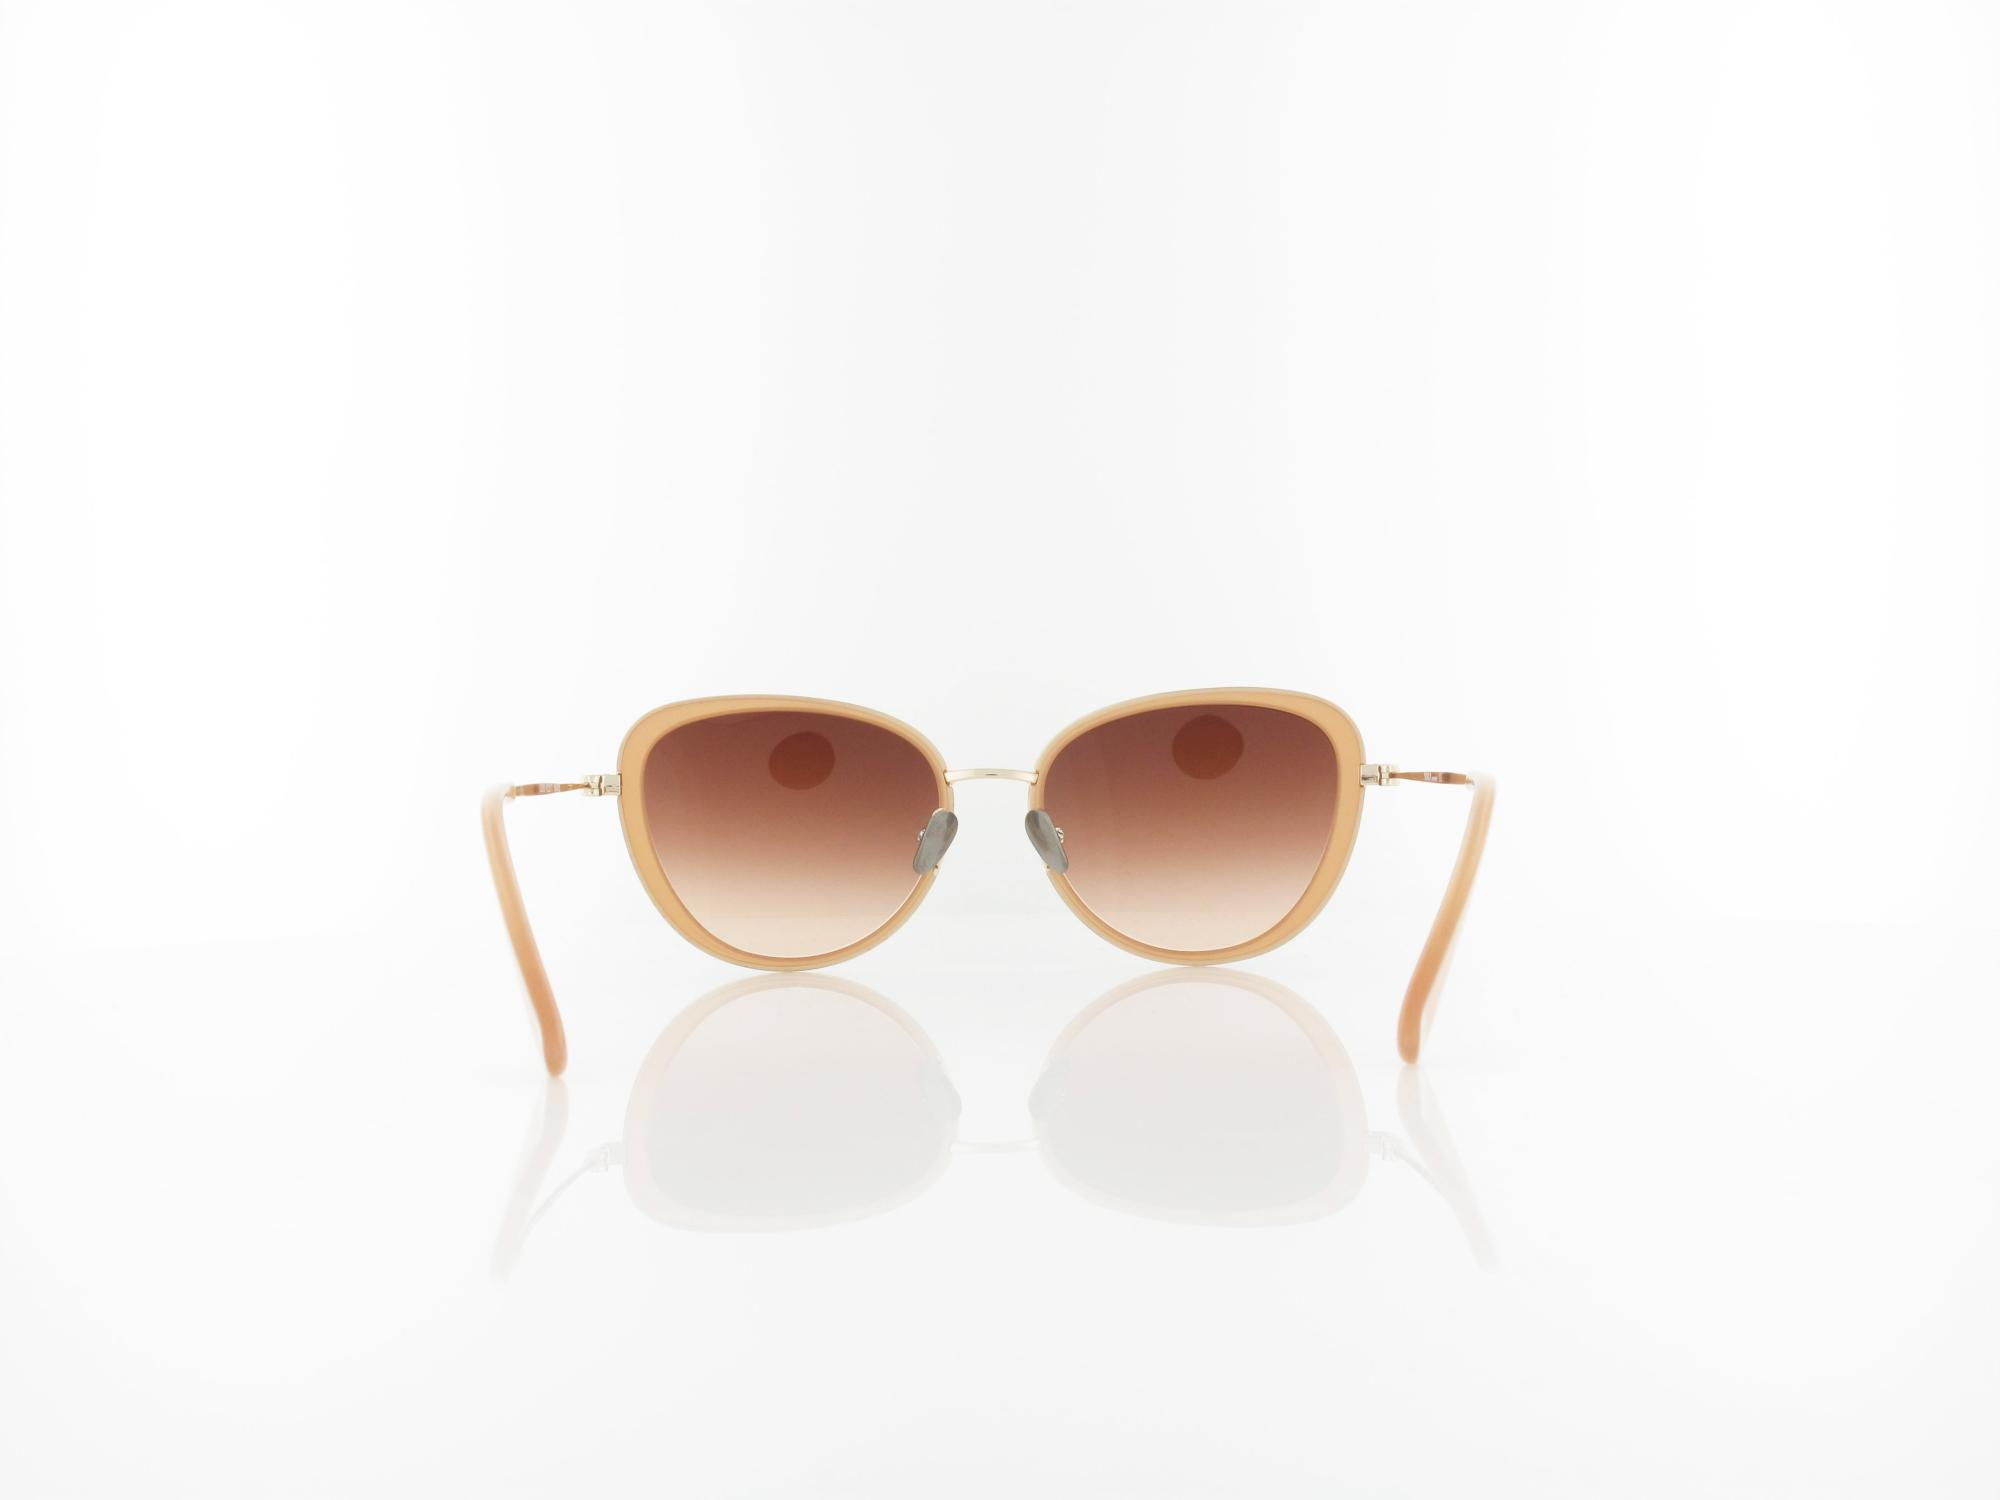 Brilando | Premium Urban U2050 52 | beige gold / brown gradient